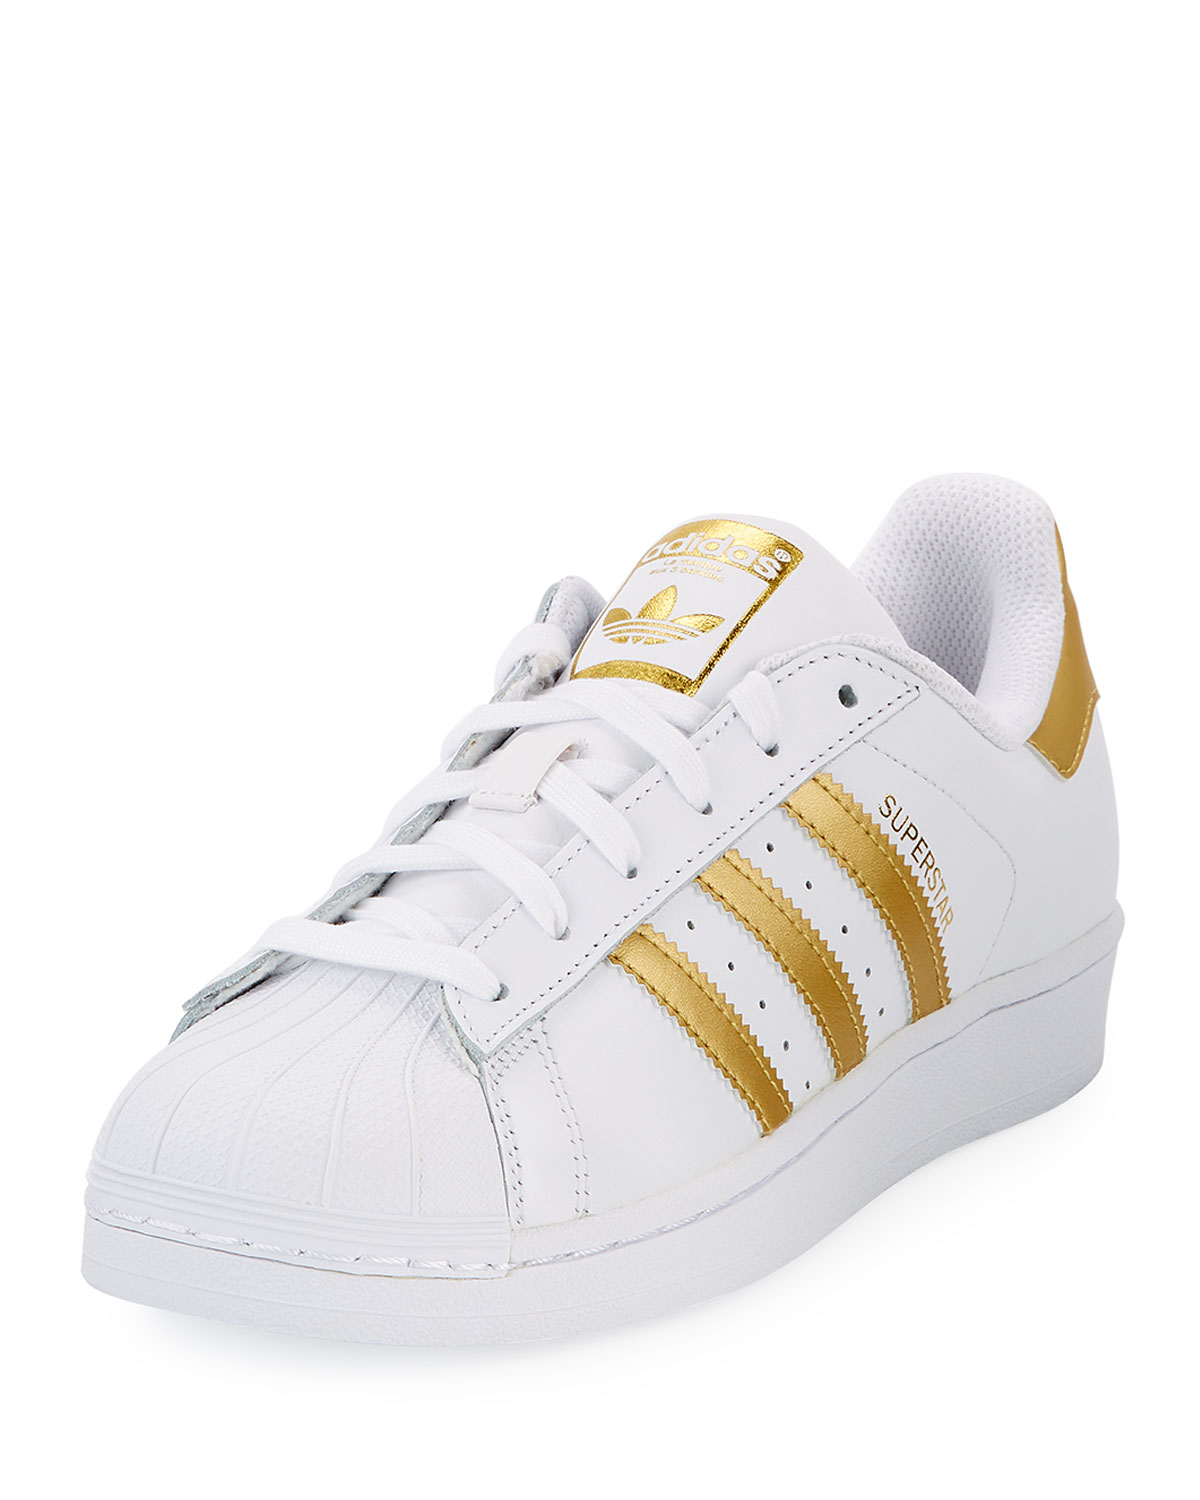 premium selection 958c8 7fc5f AdidasSuperstar Original Fashion Sneaker, White Gold